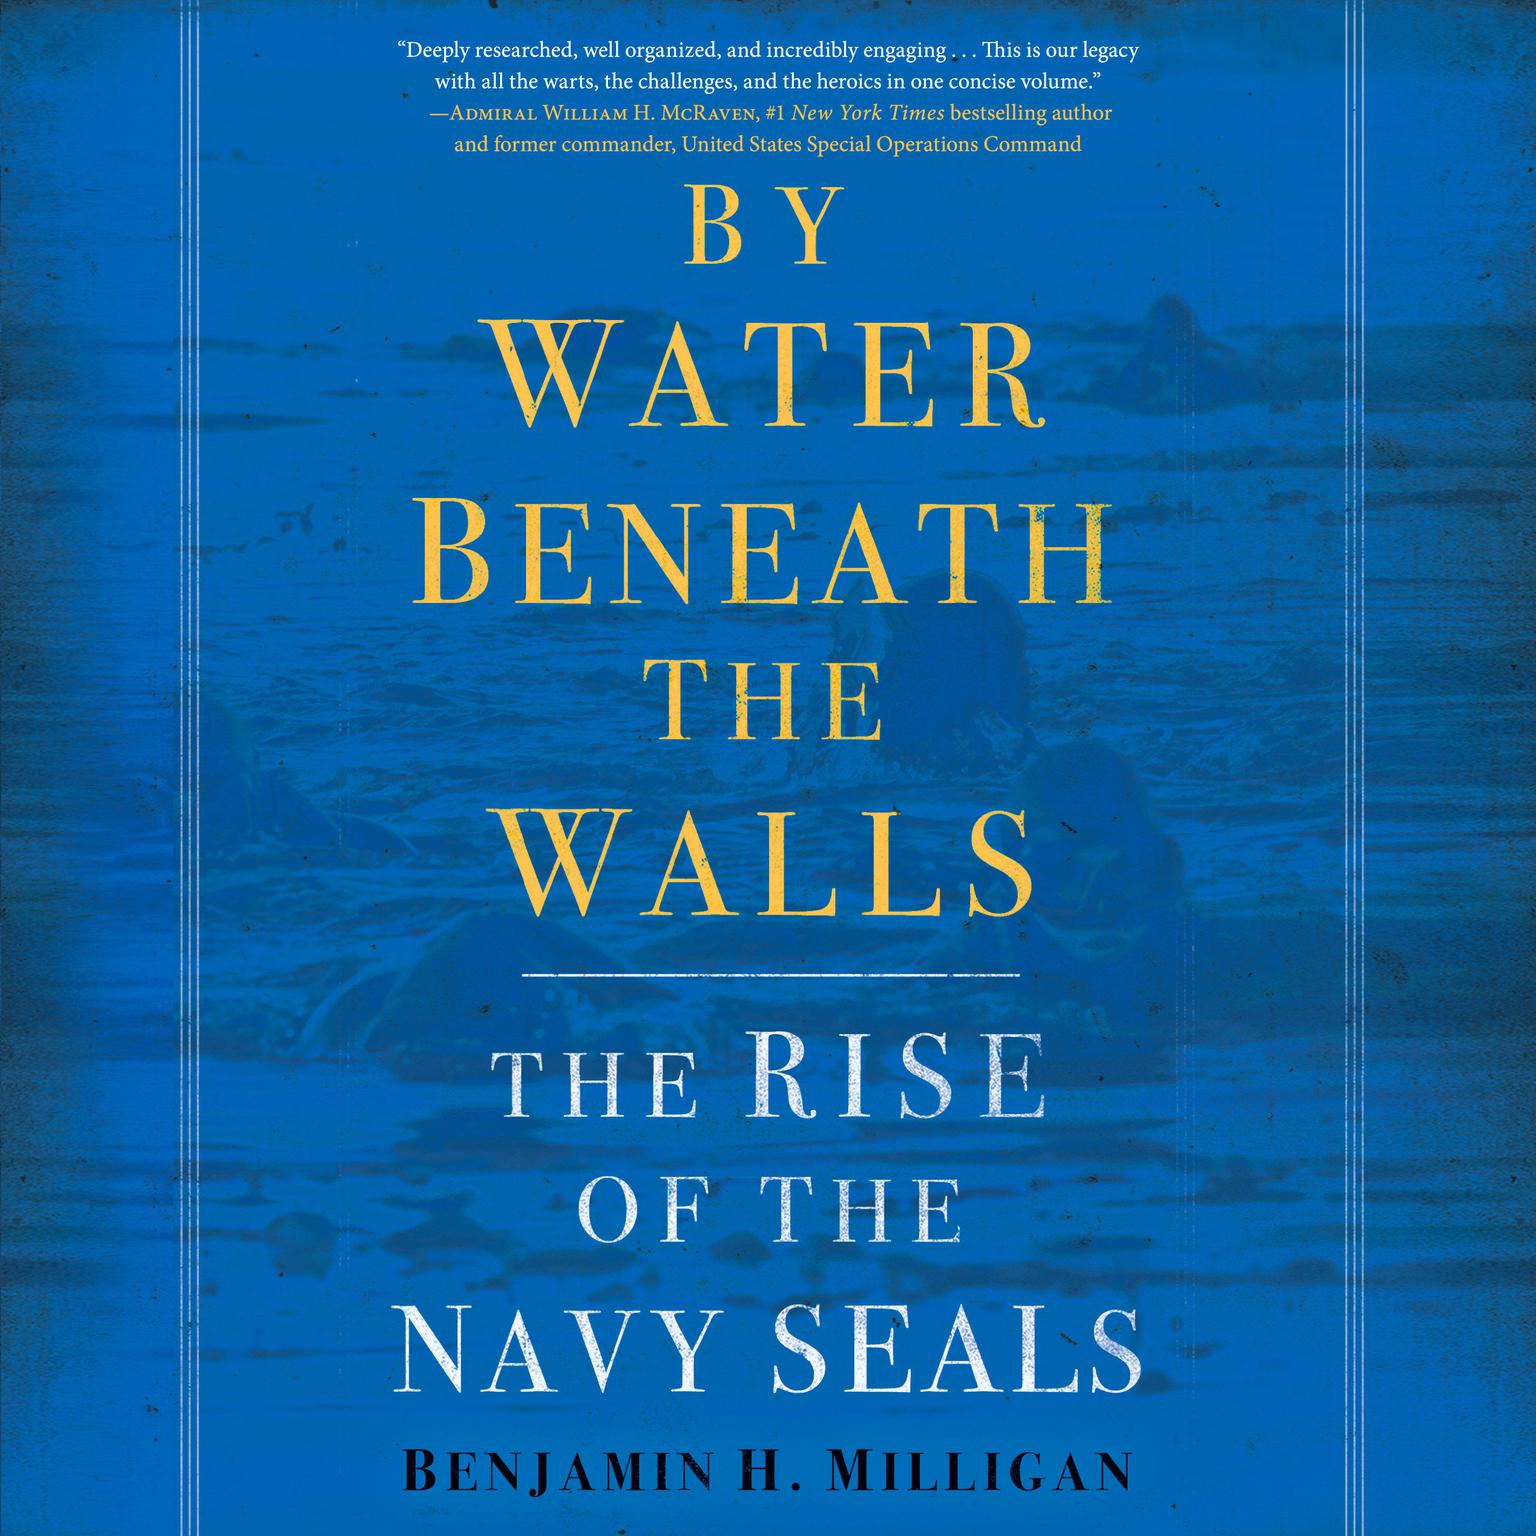 By Water Beneath the Walls: The Rise of the Navy SEALs Audiobook, by Benjamin H. Milligan